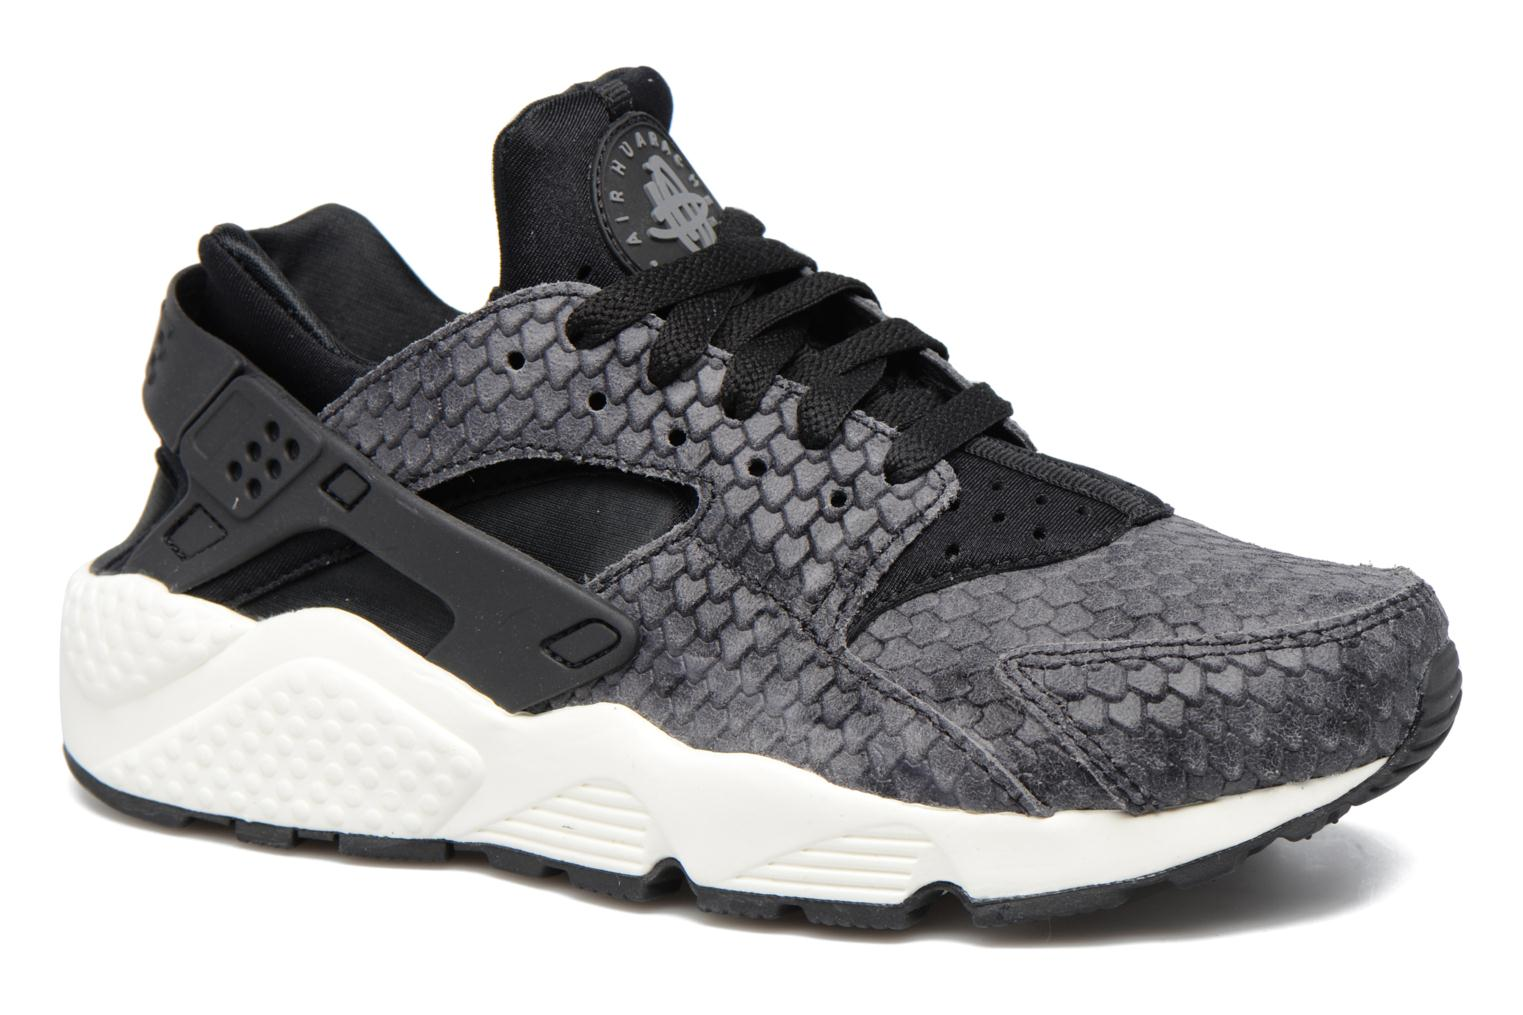 Wmns Air Huarache Run Prm Black/Black-Sail-Dark Grey